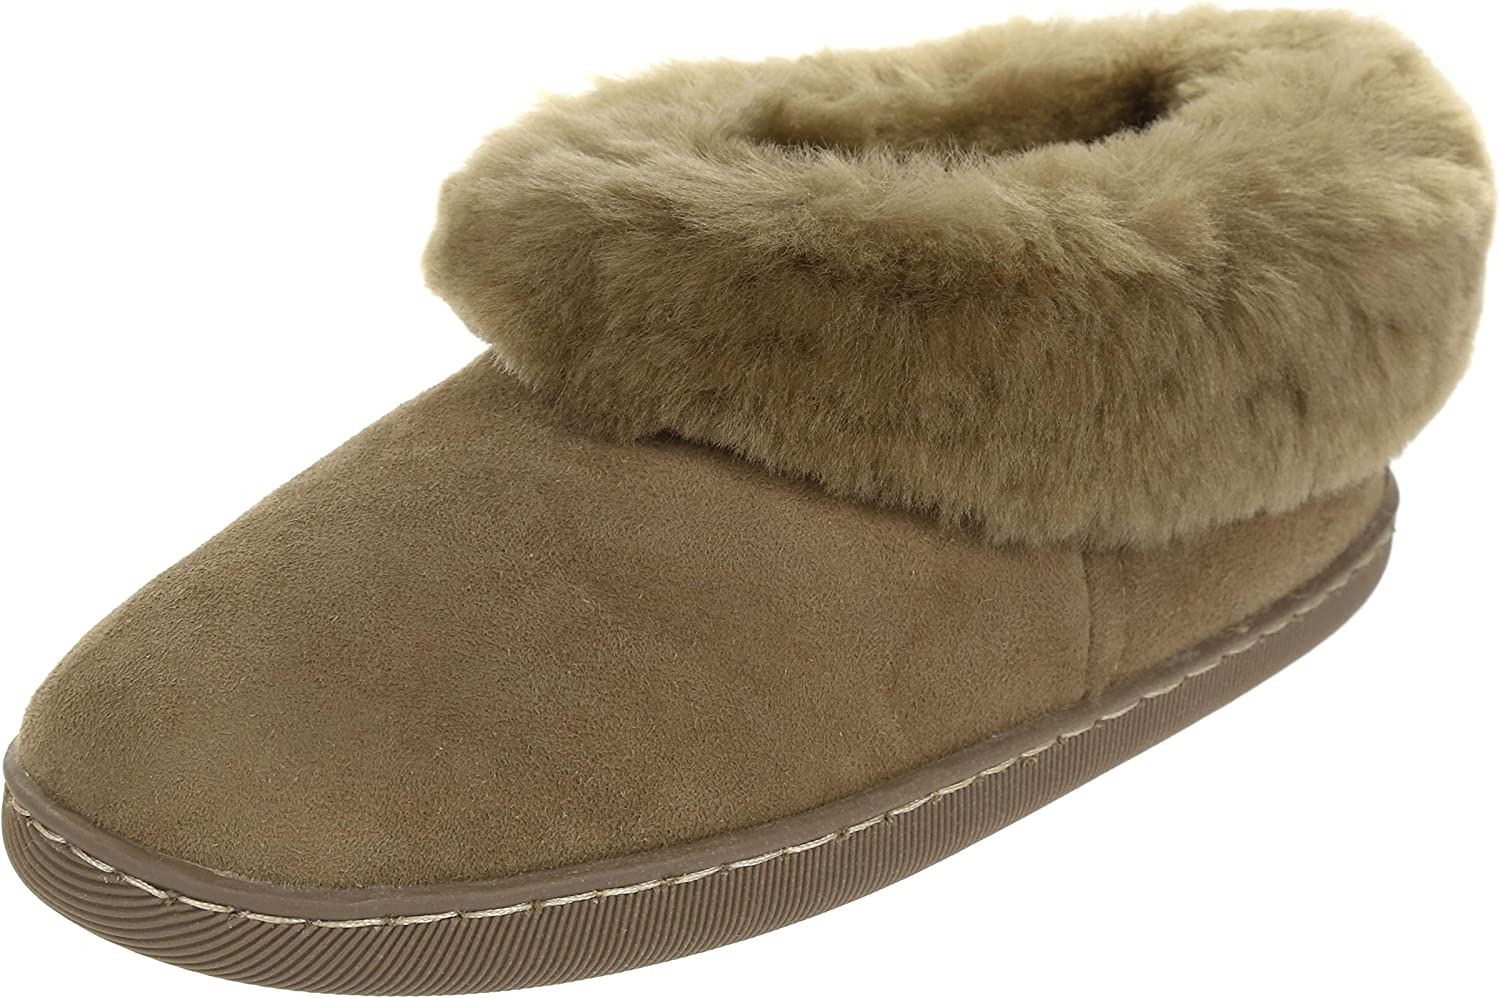 Vogar Womens Furry Leather Slippers VG-33 Sheep Wool Lined